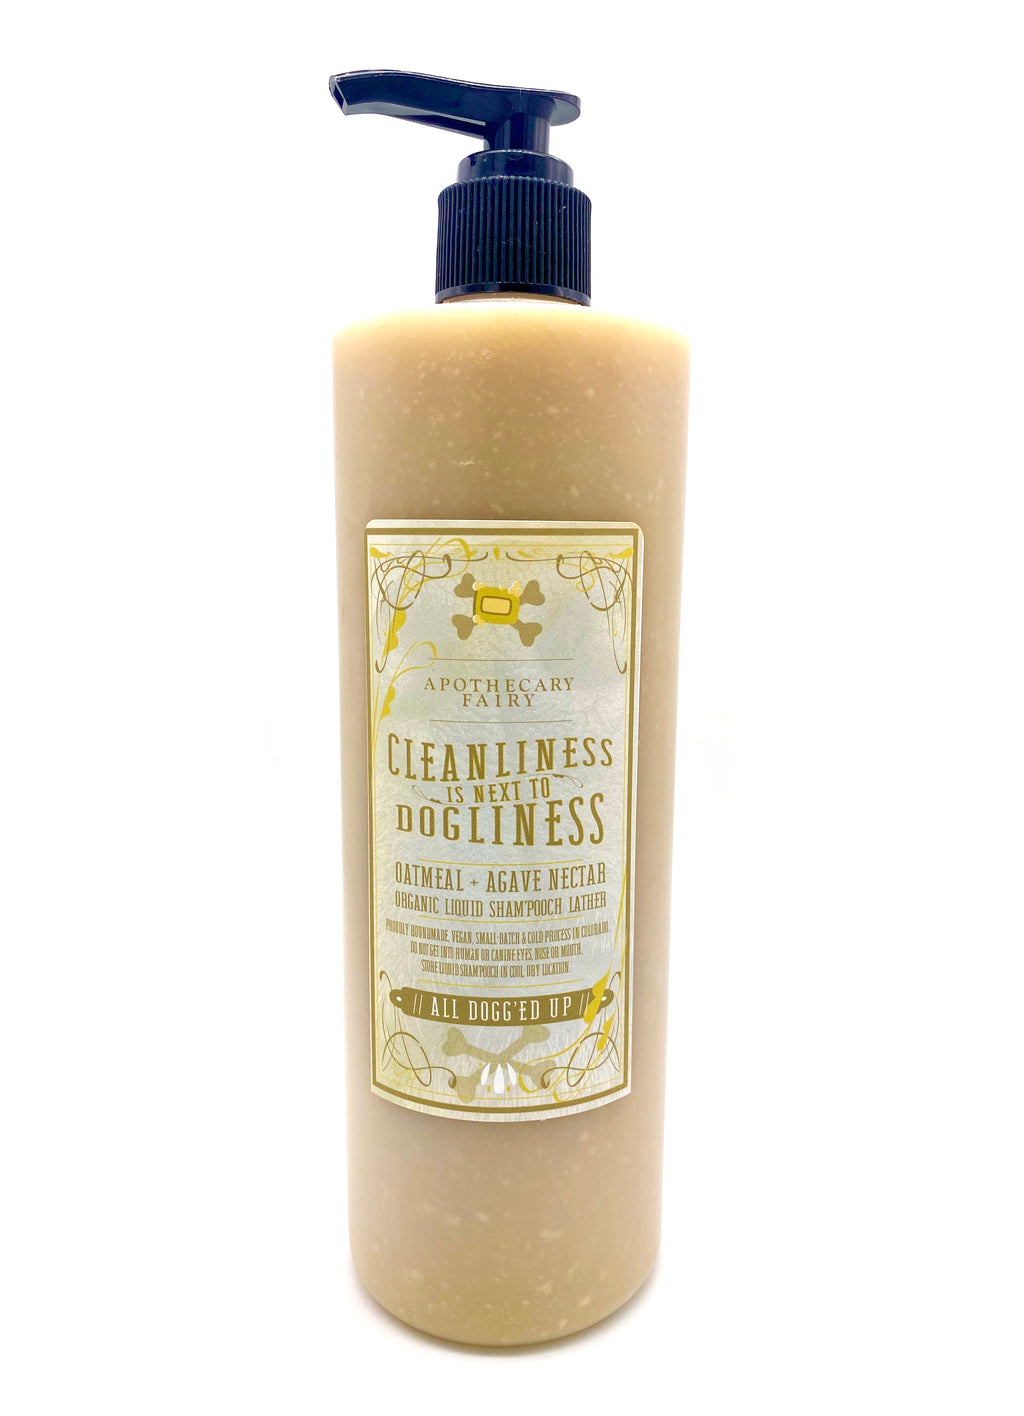 Cleanliness Is Next To Dogliness- All Dogg'ed Up Liquid Sham'pooch 16oz - The Apothecary Fairy